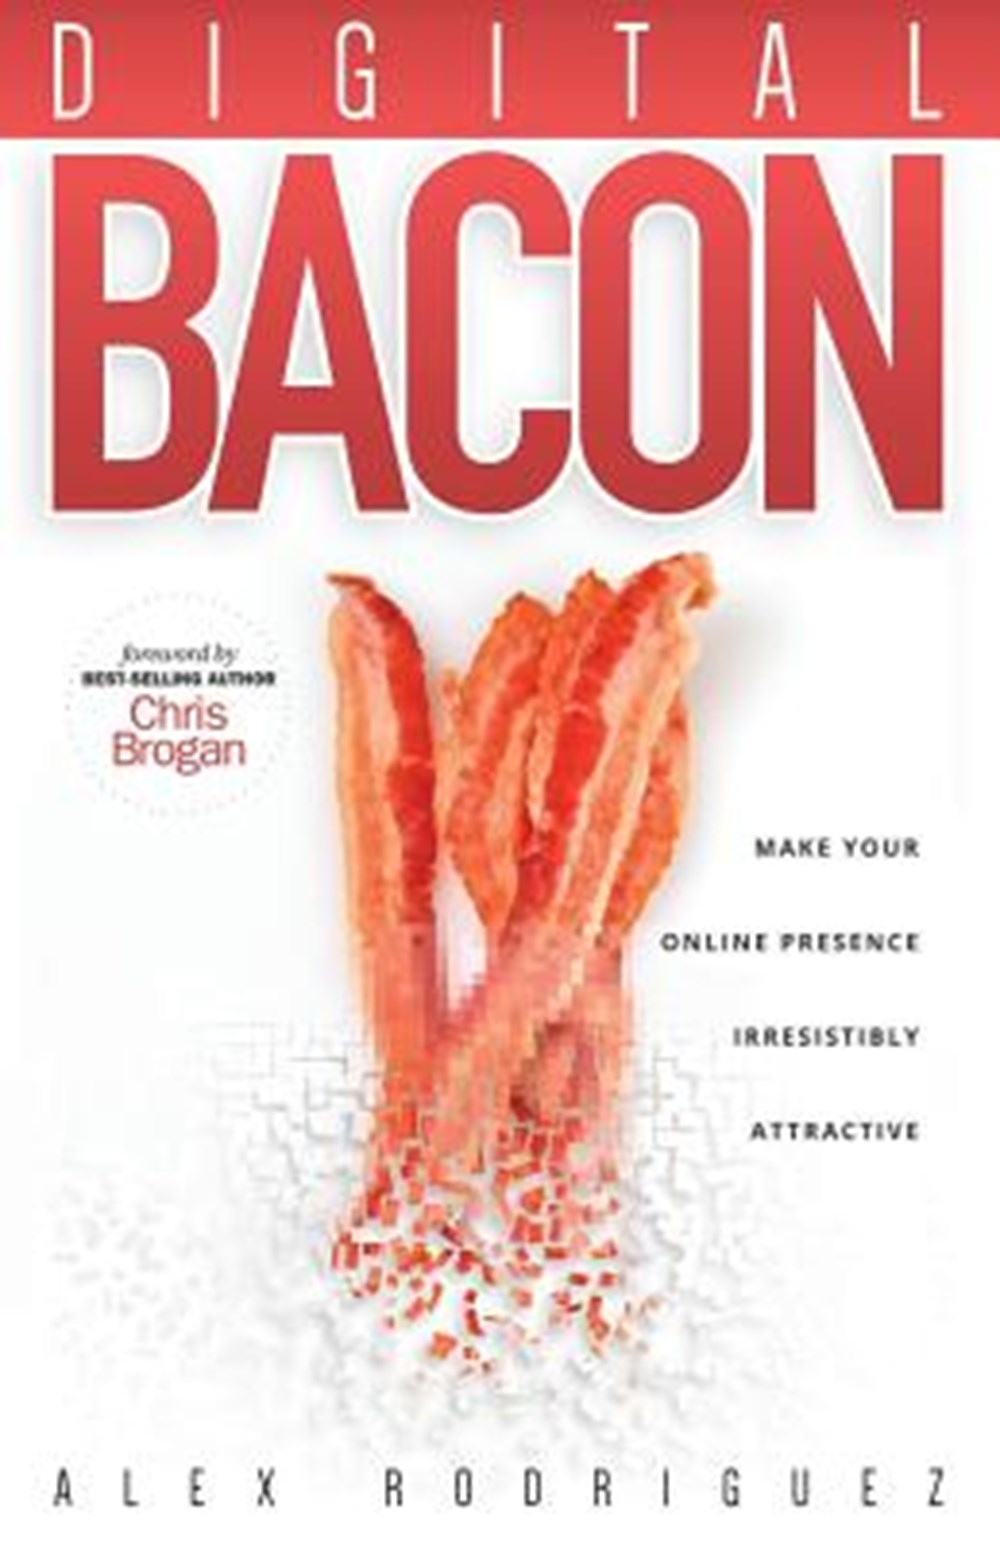 Digital Bacon Make Your Online Presence Irresistibly Attractive